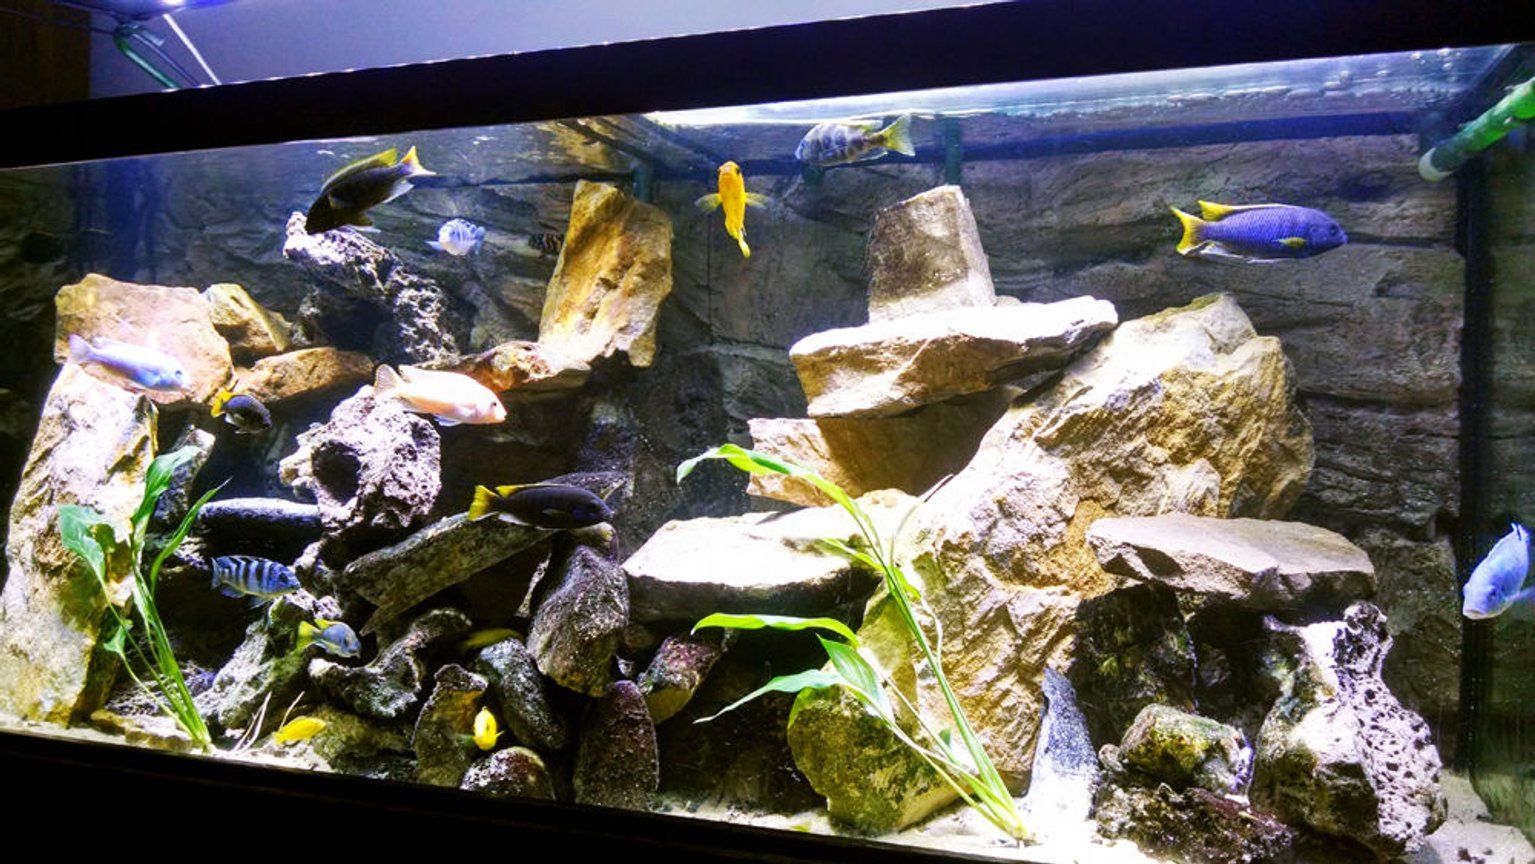 75 gallons freshwater fish tank (mostly fish and non-living decorations) - Lake Malawi Cichlids. 75 gallon All-Glass aquarium with an Eheim Ecco canister filter and an Eheim Wet/Dry canister filter. Lighting is a Deep Blue Professional SolarFlare DX LED. ATG 3d rock wall background. Rockscapes are all natural stone...mostly sand stone and lace rock.